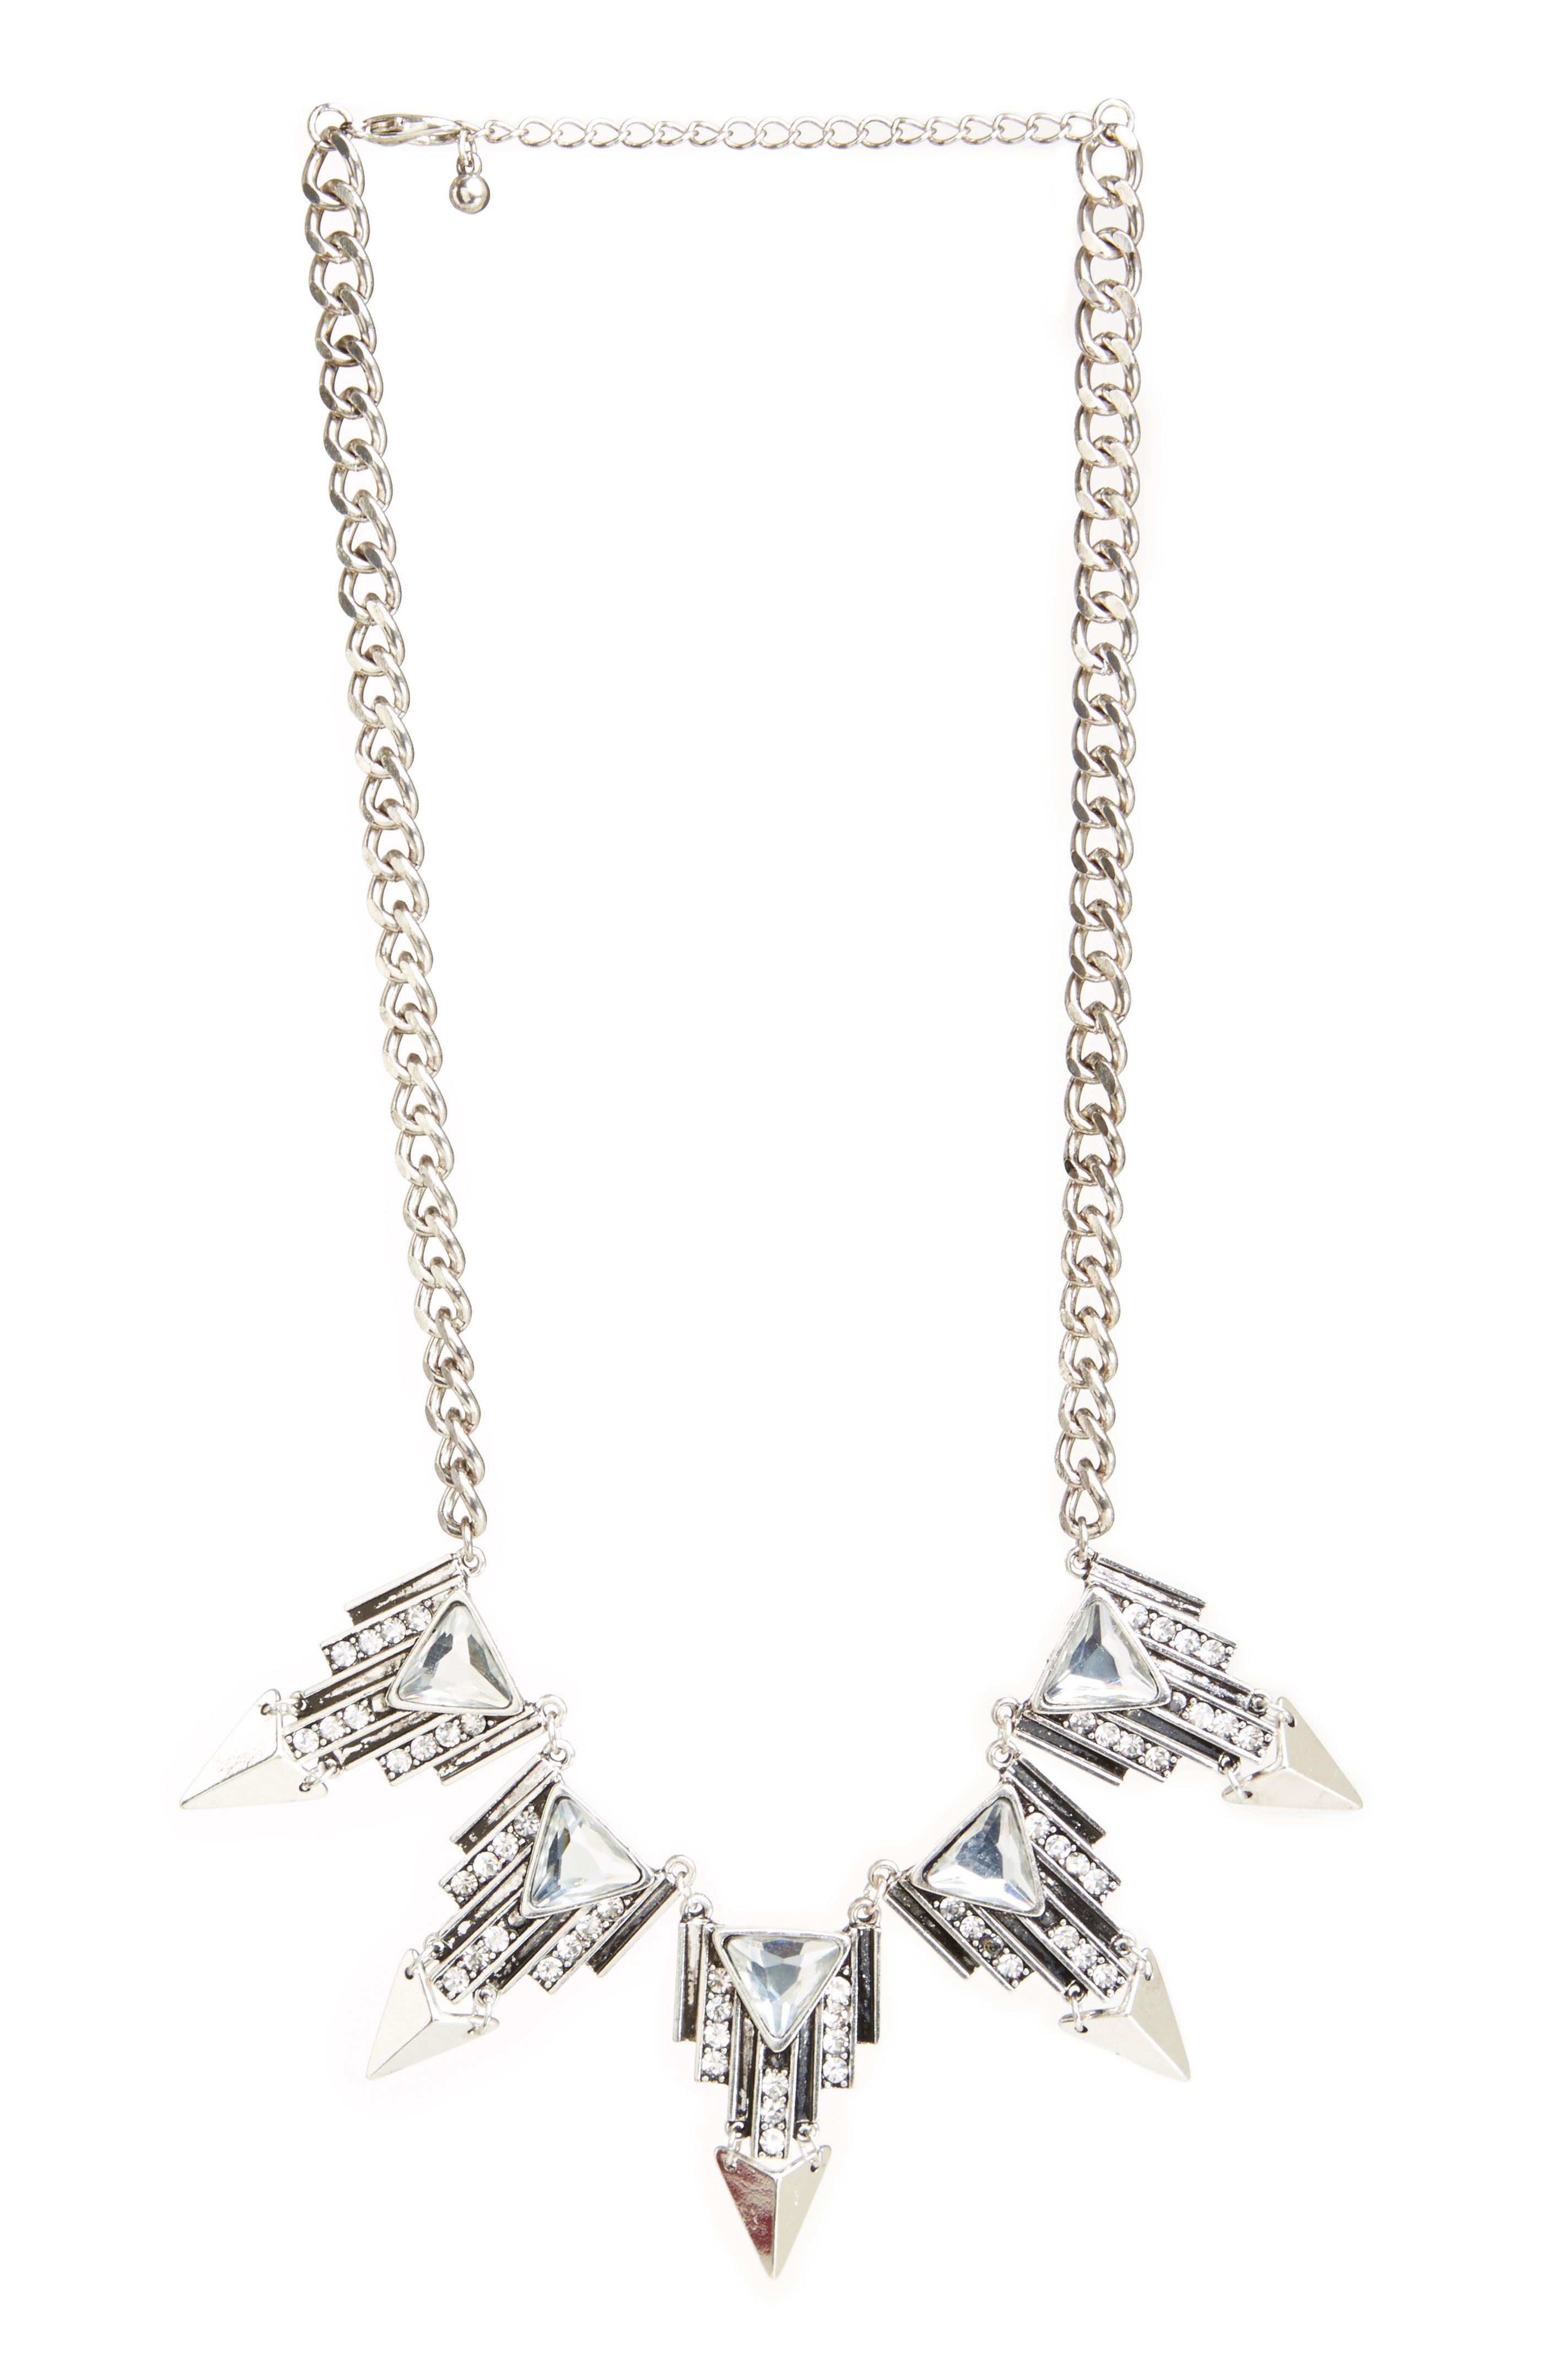 DAILYLOOK Joan of Arc Crystal Necklace in silver at DAILYLOOK